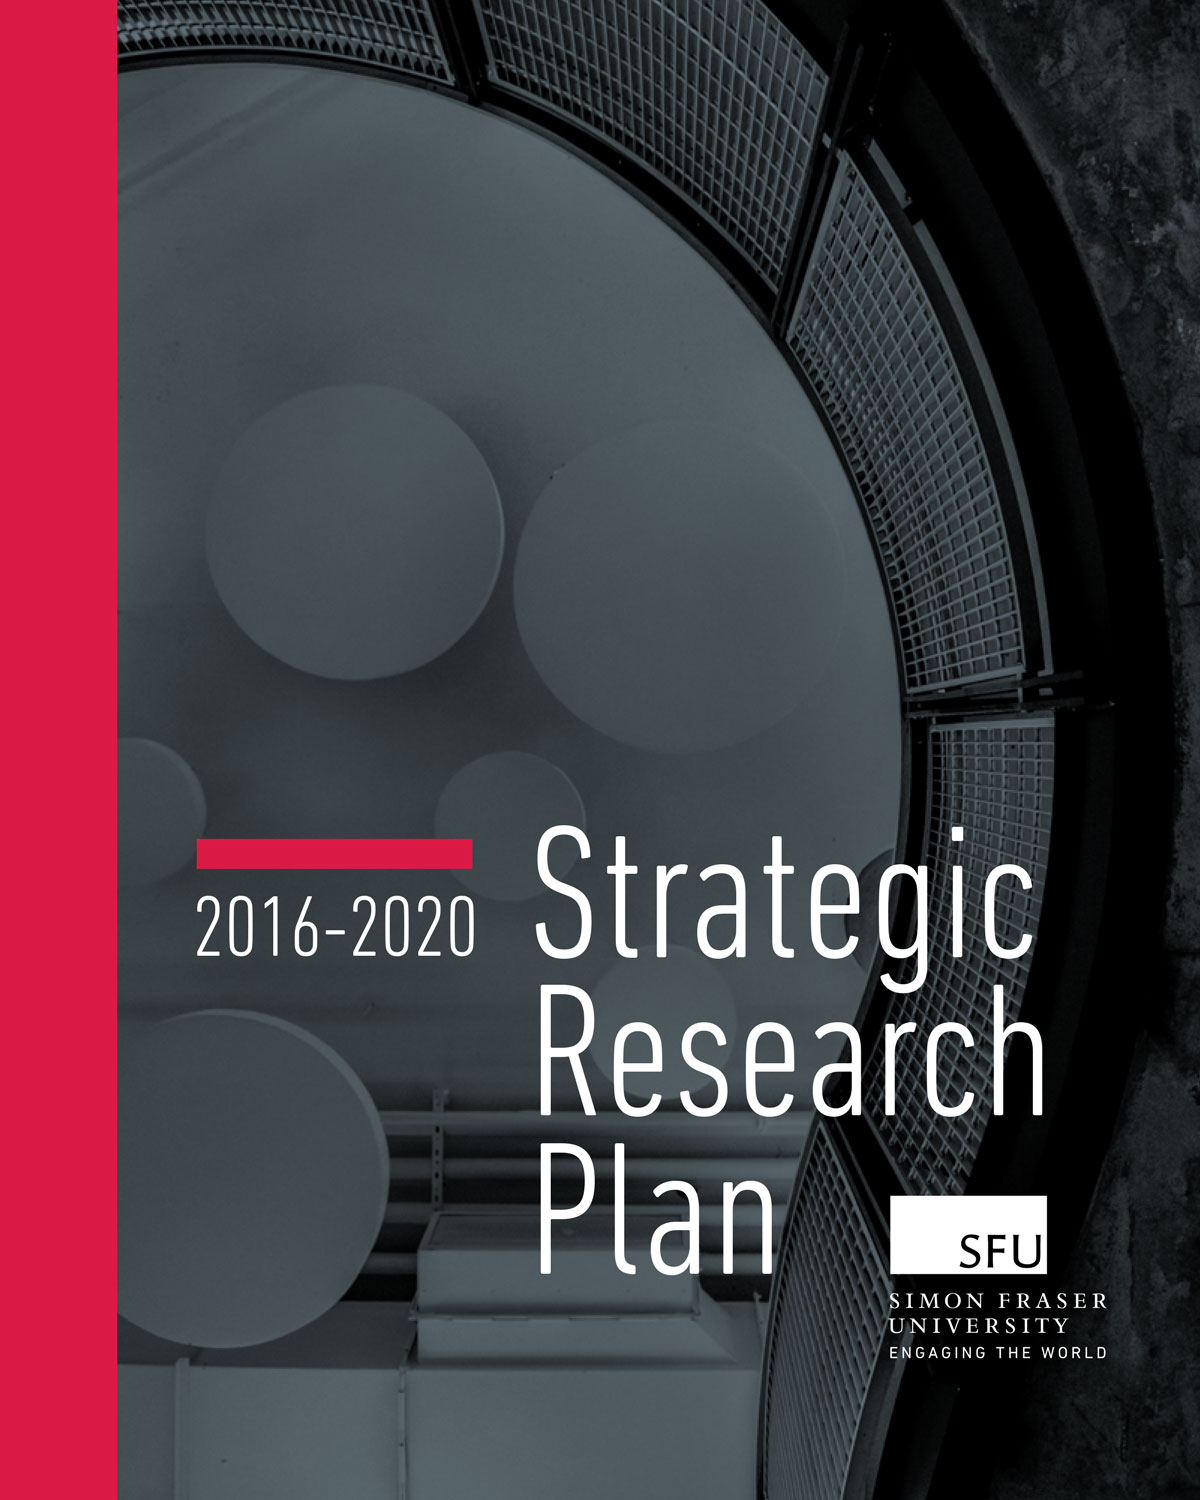 SFU Strategic Research Plan 2016-2020